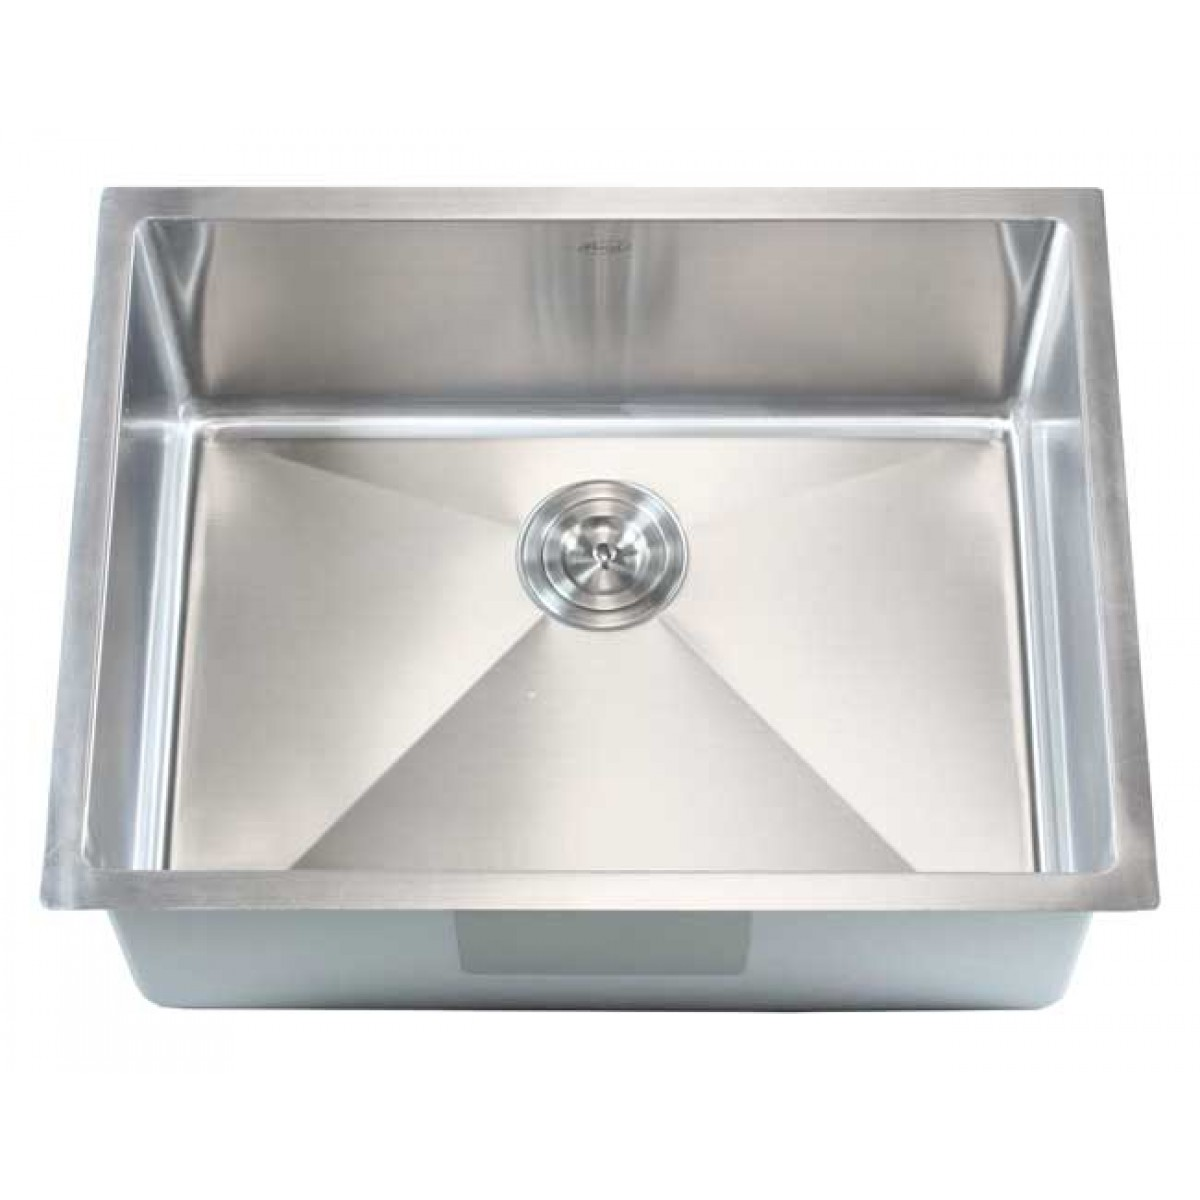 Undermount Kitchen Sinks For Sale on ovens for kitchens, microwaves for kitchens, farm sinks for kitchens, instant hot water taps for kitchens, lighting for kitchens, corner sinks for kitchens, porcelain sinks for kitchens, double sinks for kitchens, hardwood for kitchens, prep sinks for kitchens, vessel sinks for kitchens, stone for kitchens, cabinets for kitchens, stainless steel appliances for kitchens, countertops for kitchens, granite for kitchens, faucets for kitchens, modern sinks for kitchens, hardware for kitchens, apron sinks for kitchens,